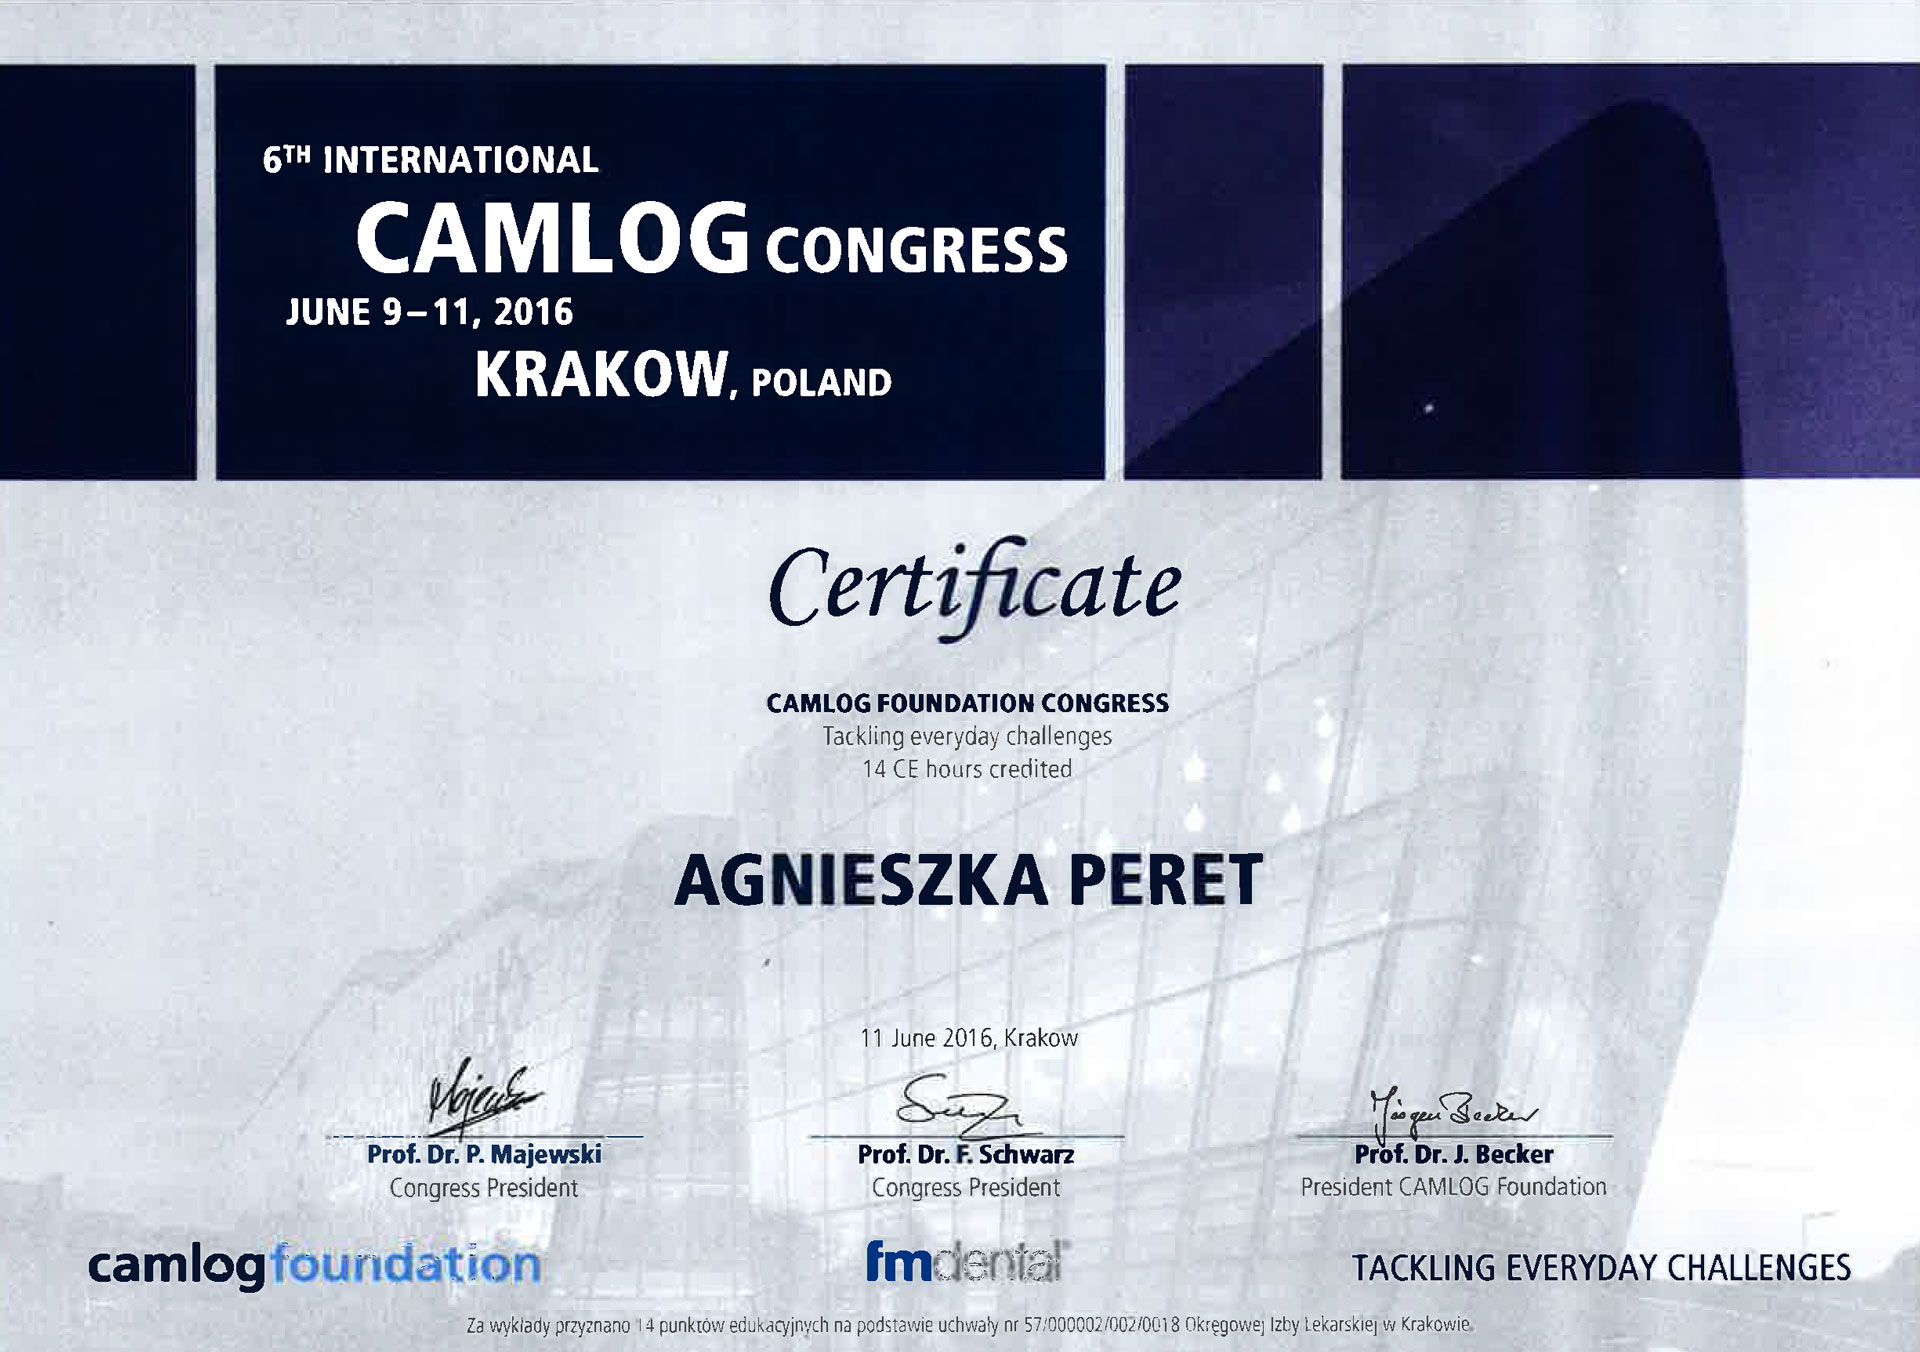 6th International CAMLOG Congress - Agnieszka Peret